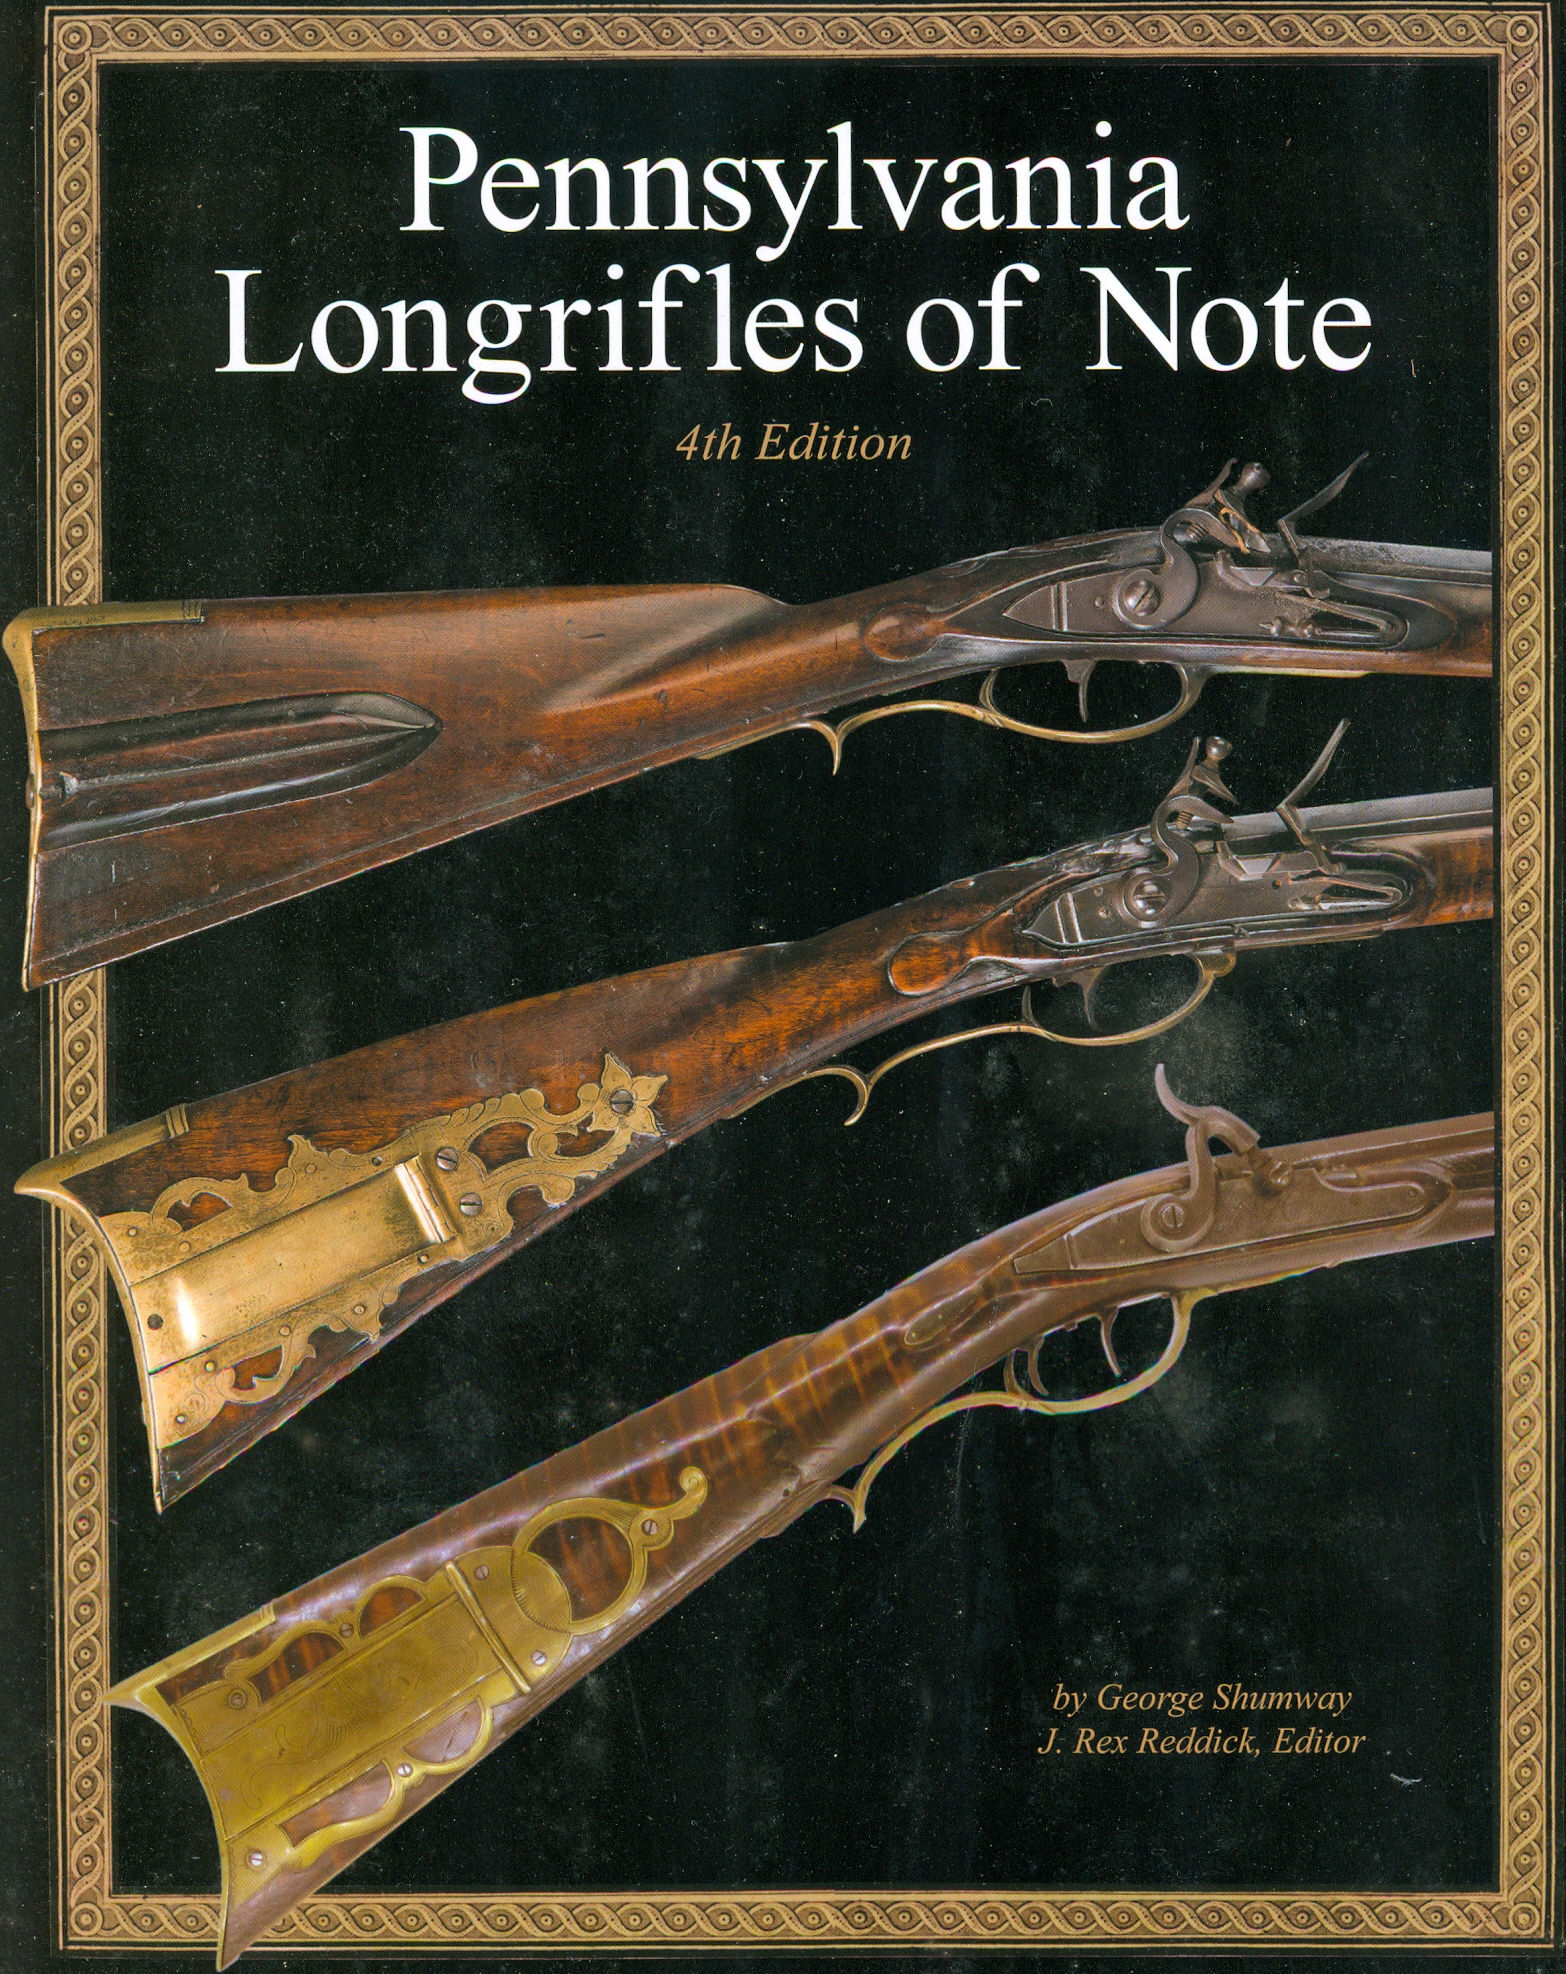 Pennsylvania Longrifles of Note